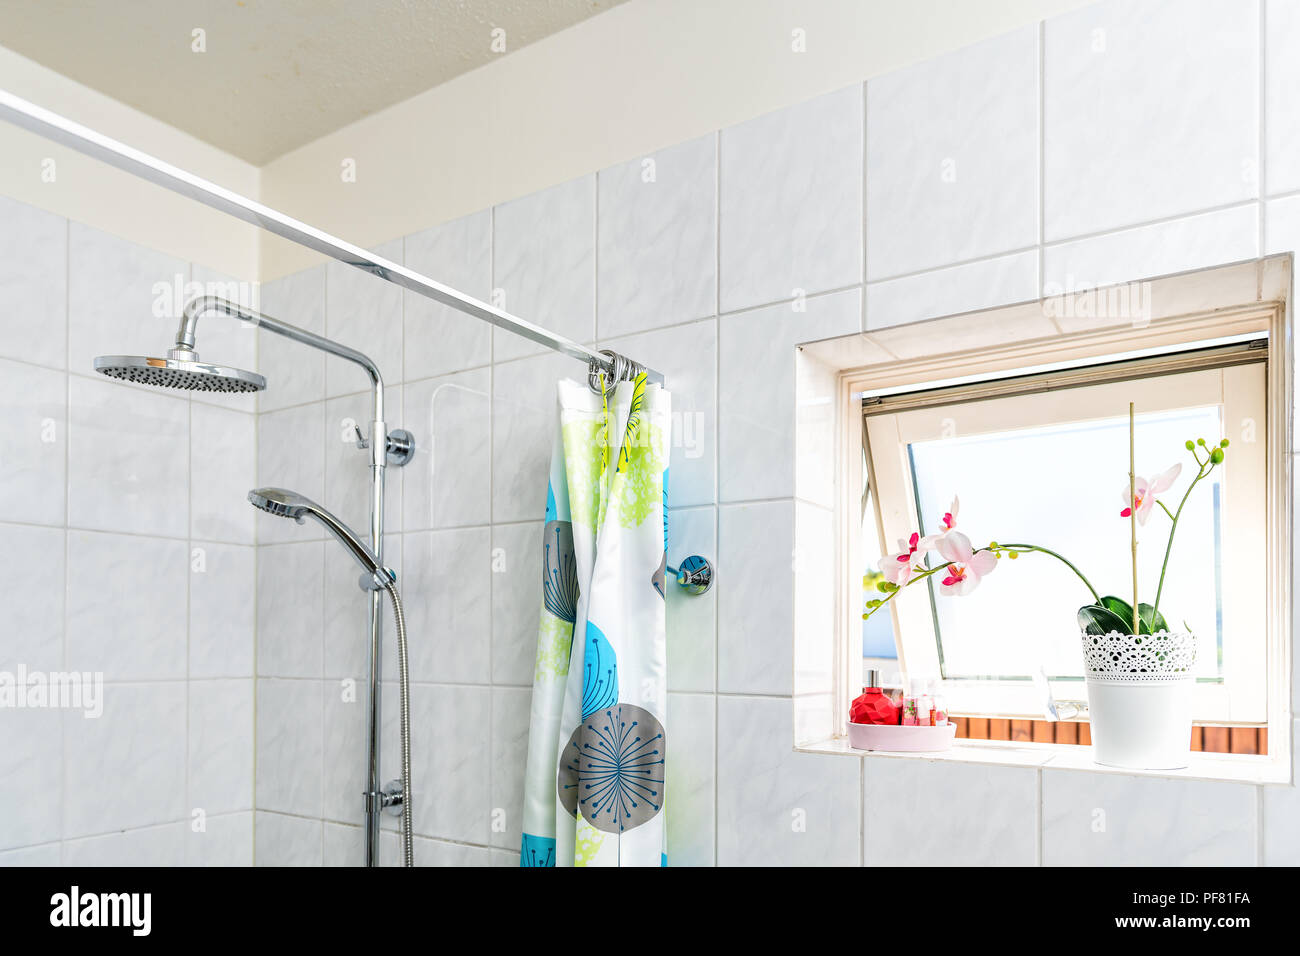 Modern tiles, tiled bathroom, shower, heads, tension rod with rings ...